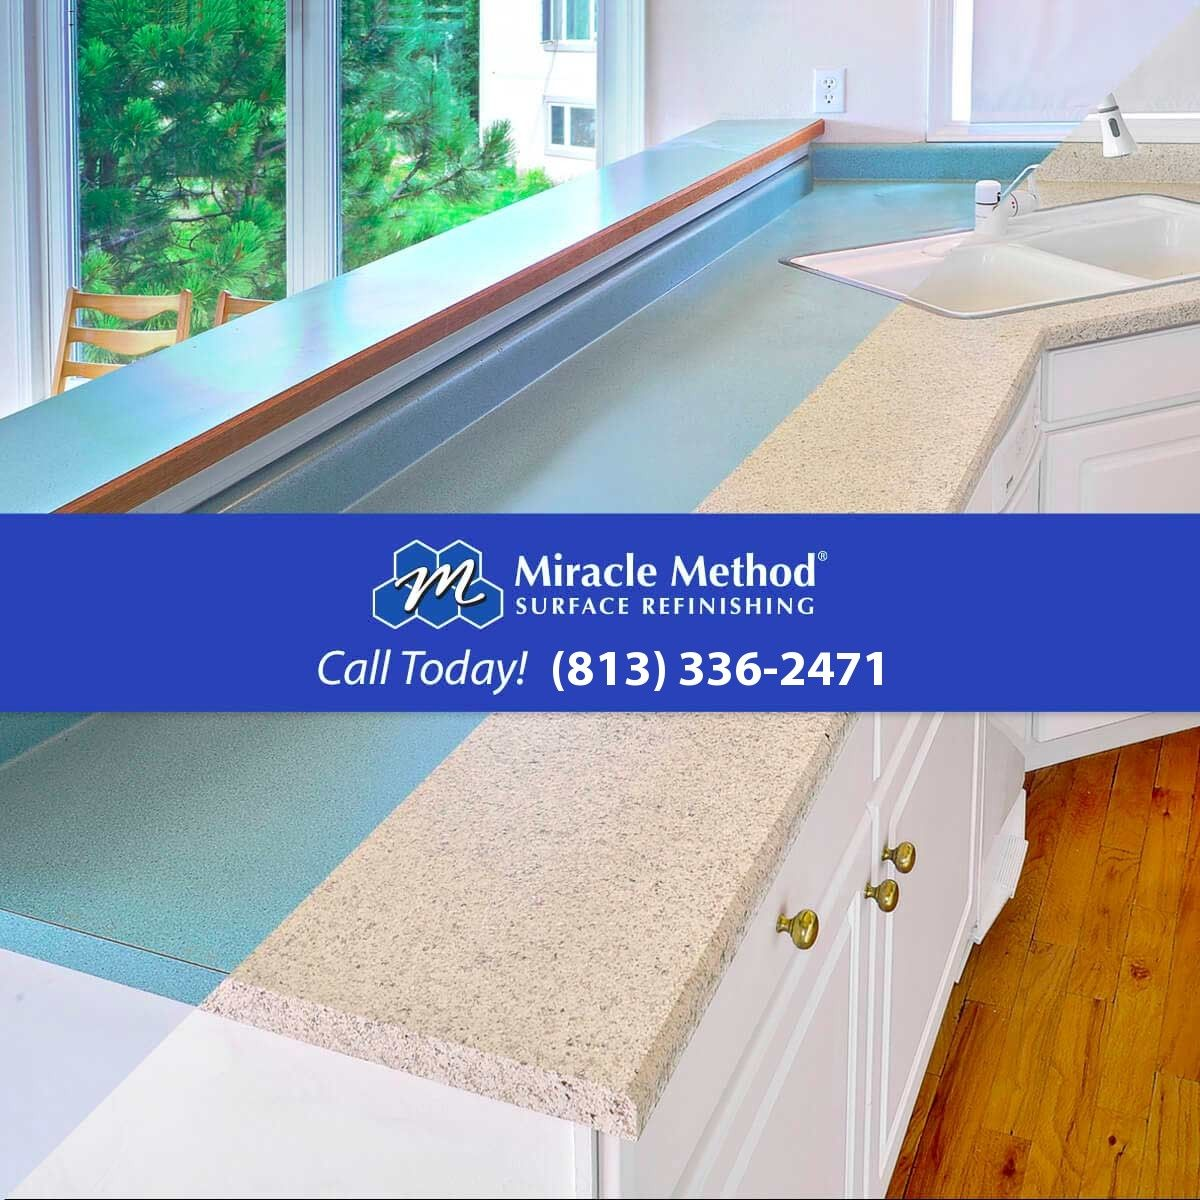 Designer Colors From Miracle Method Of Tampa East In 2020 With Images Refinish Bathtub Tub Refinishing Refinish Countertops